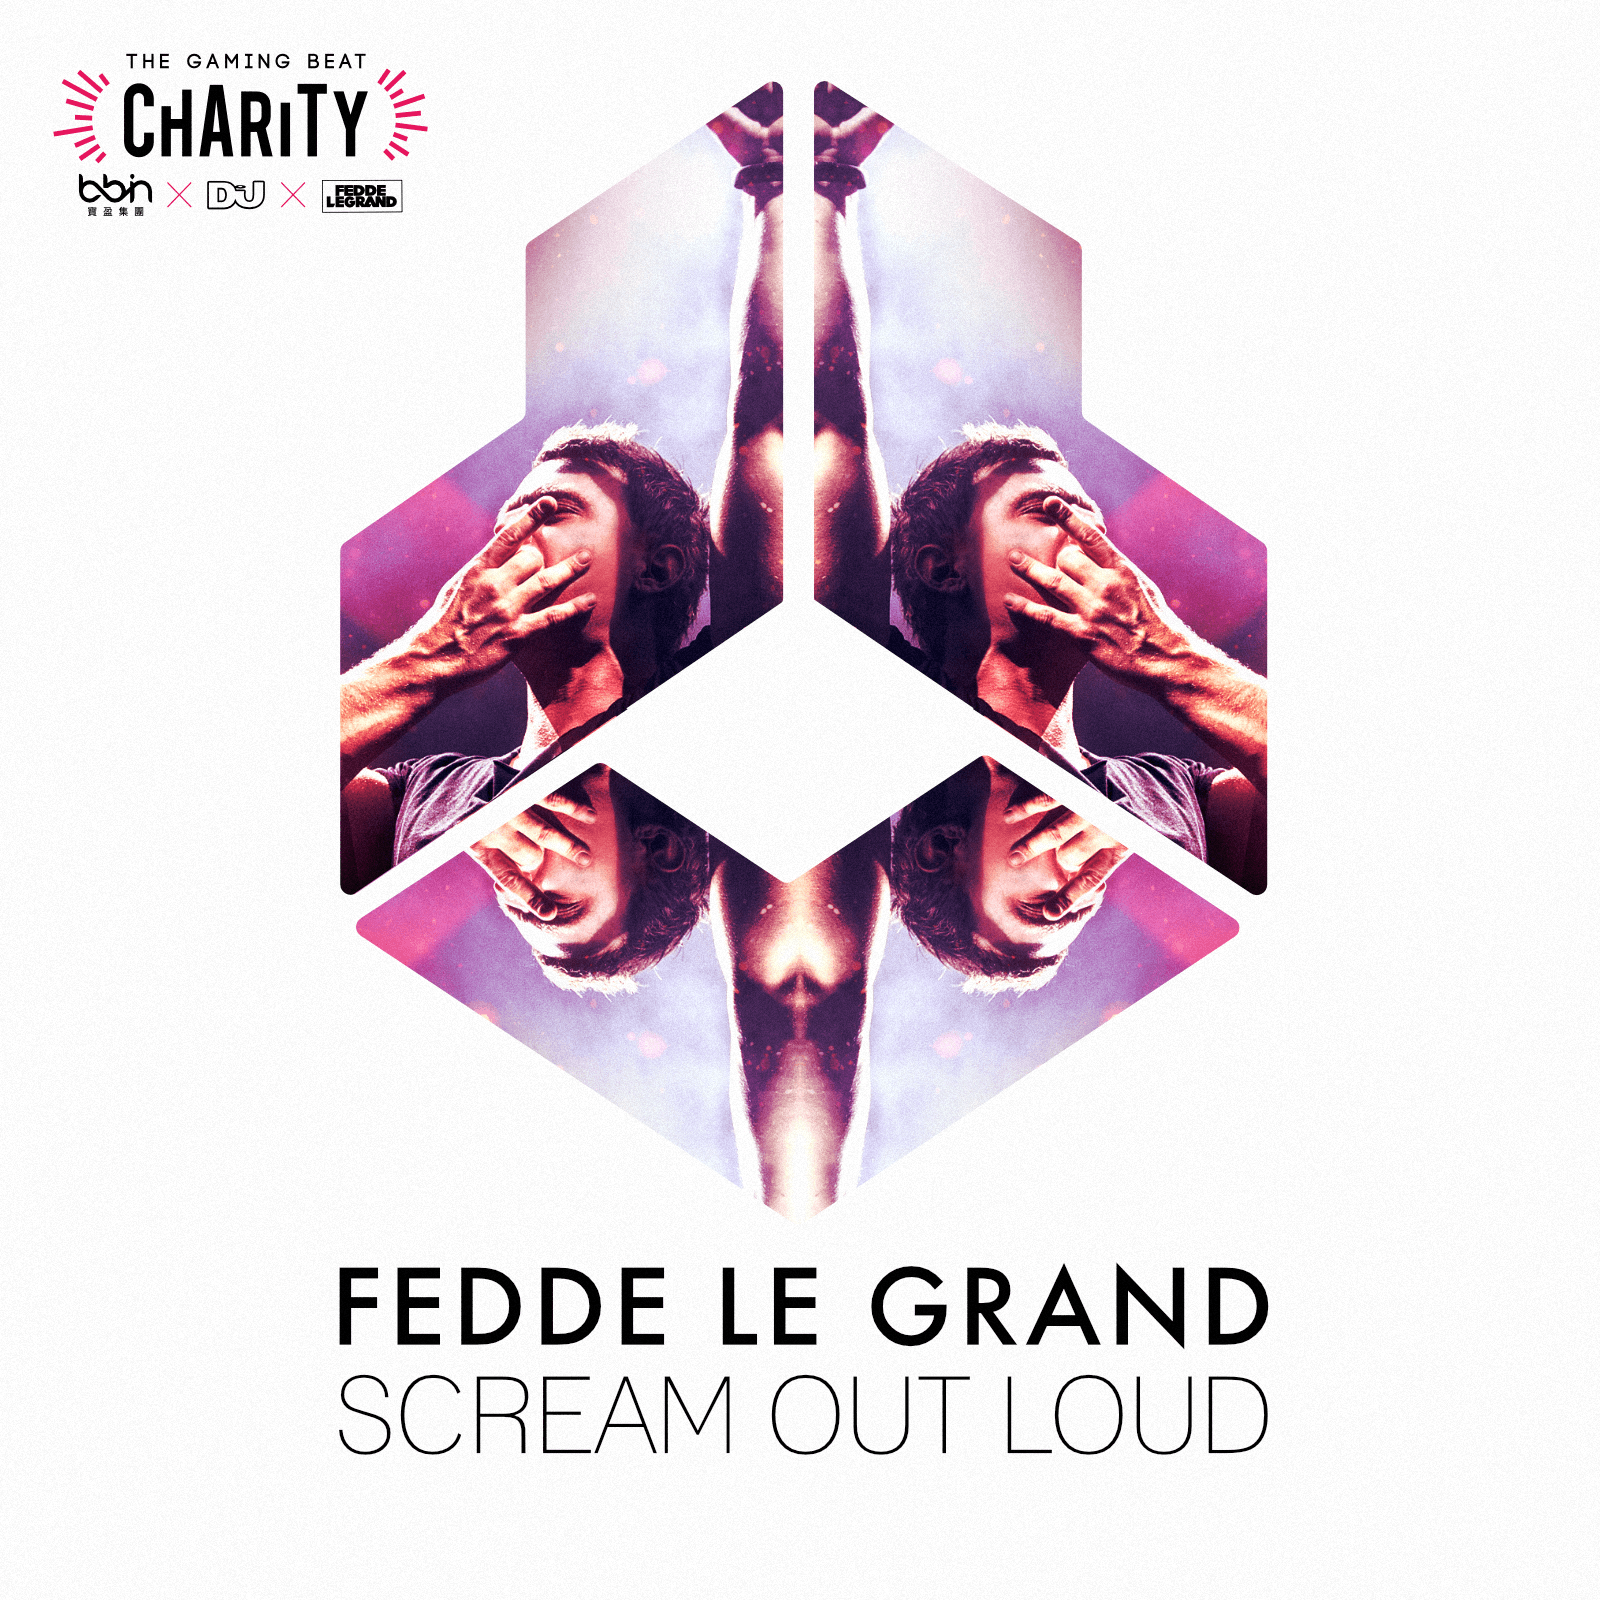 Fedde Le Grand - Scream Out Loud